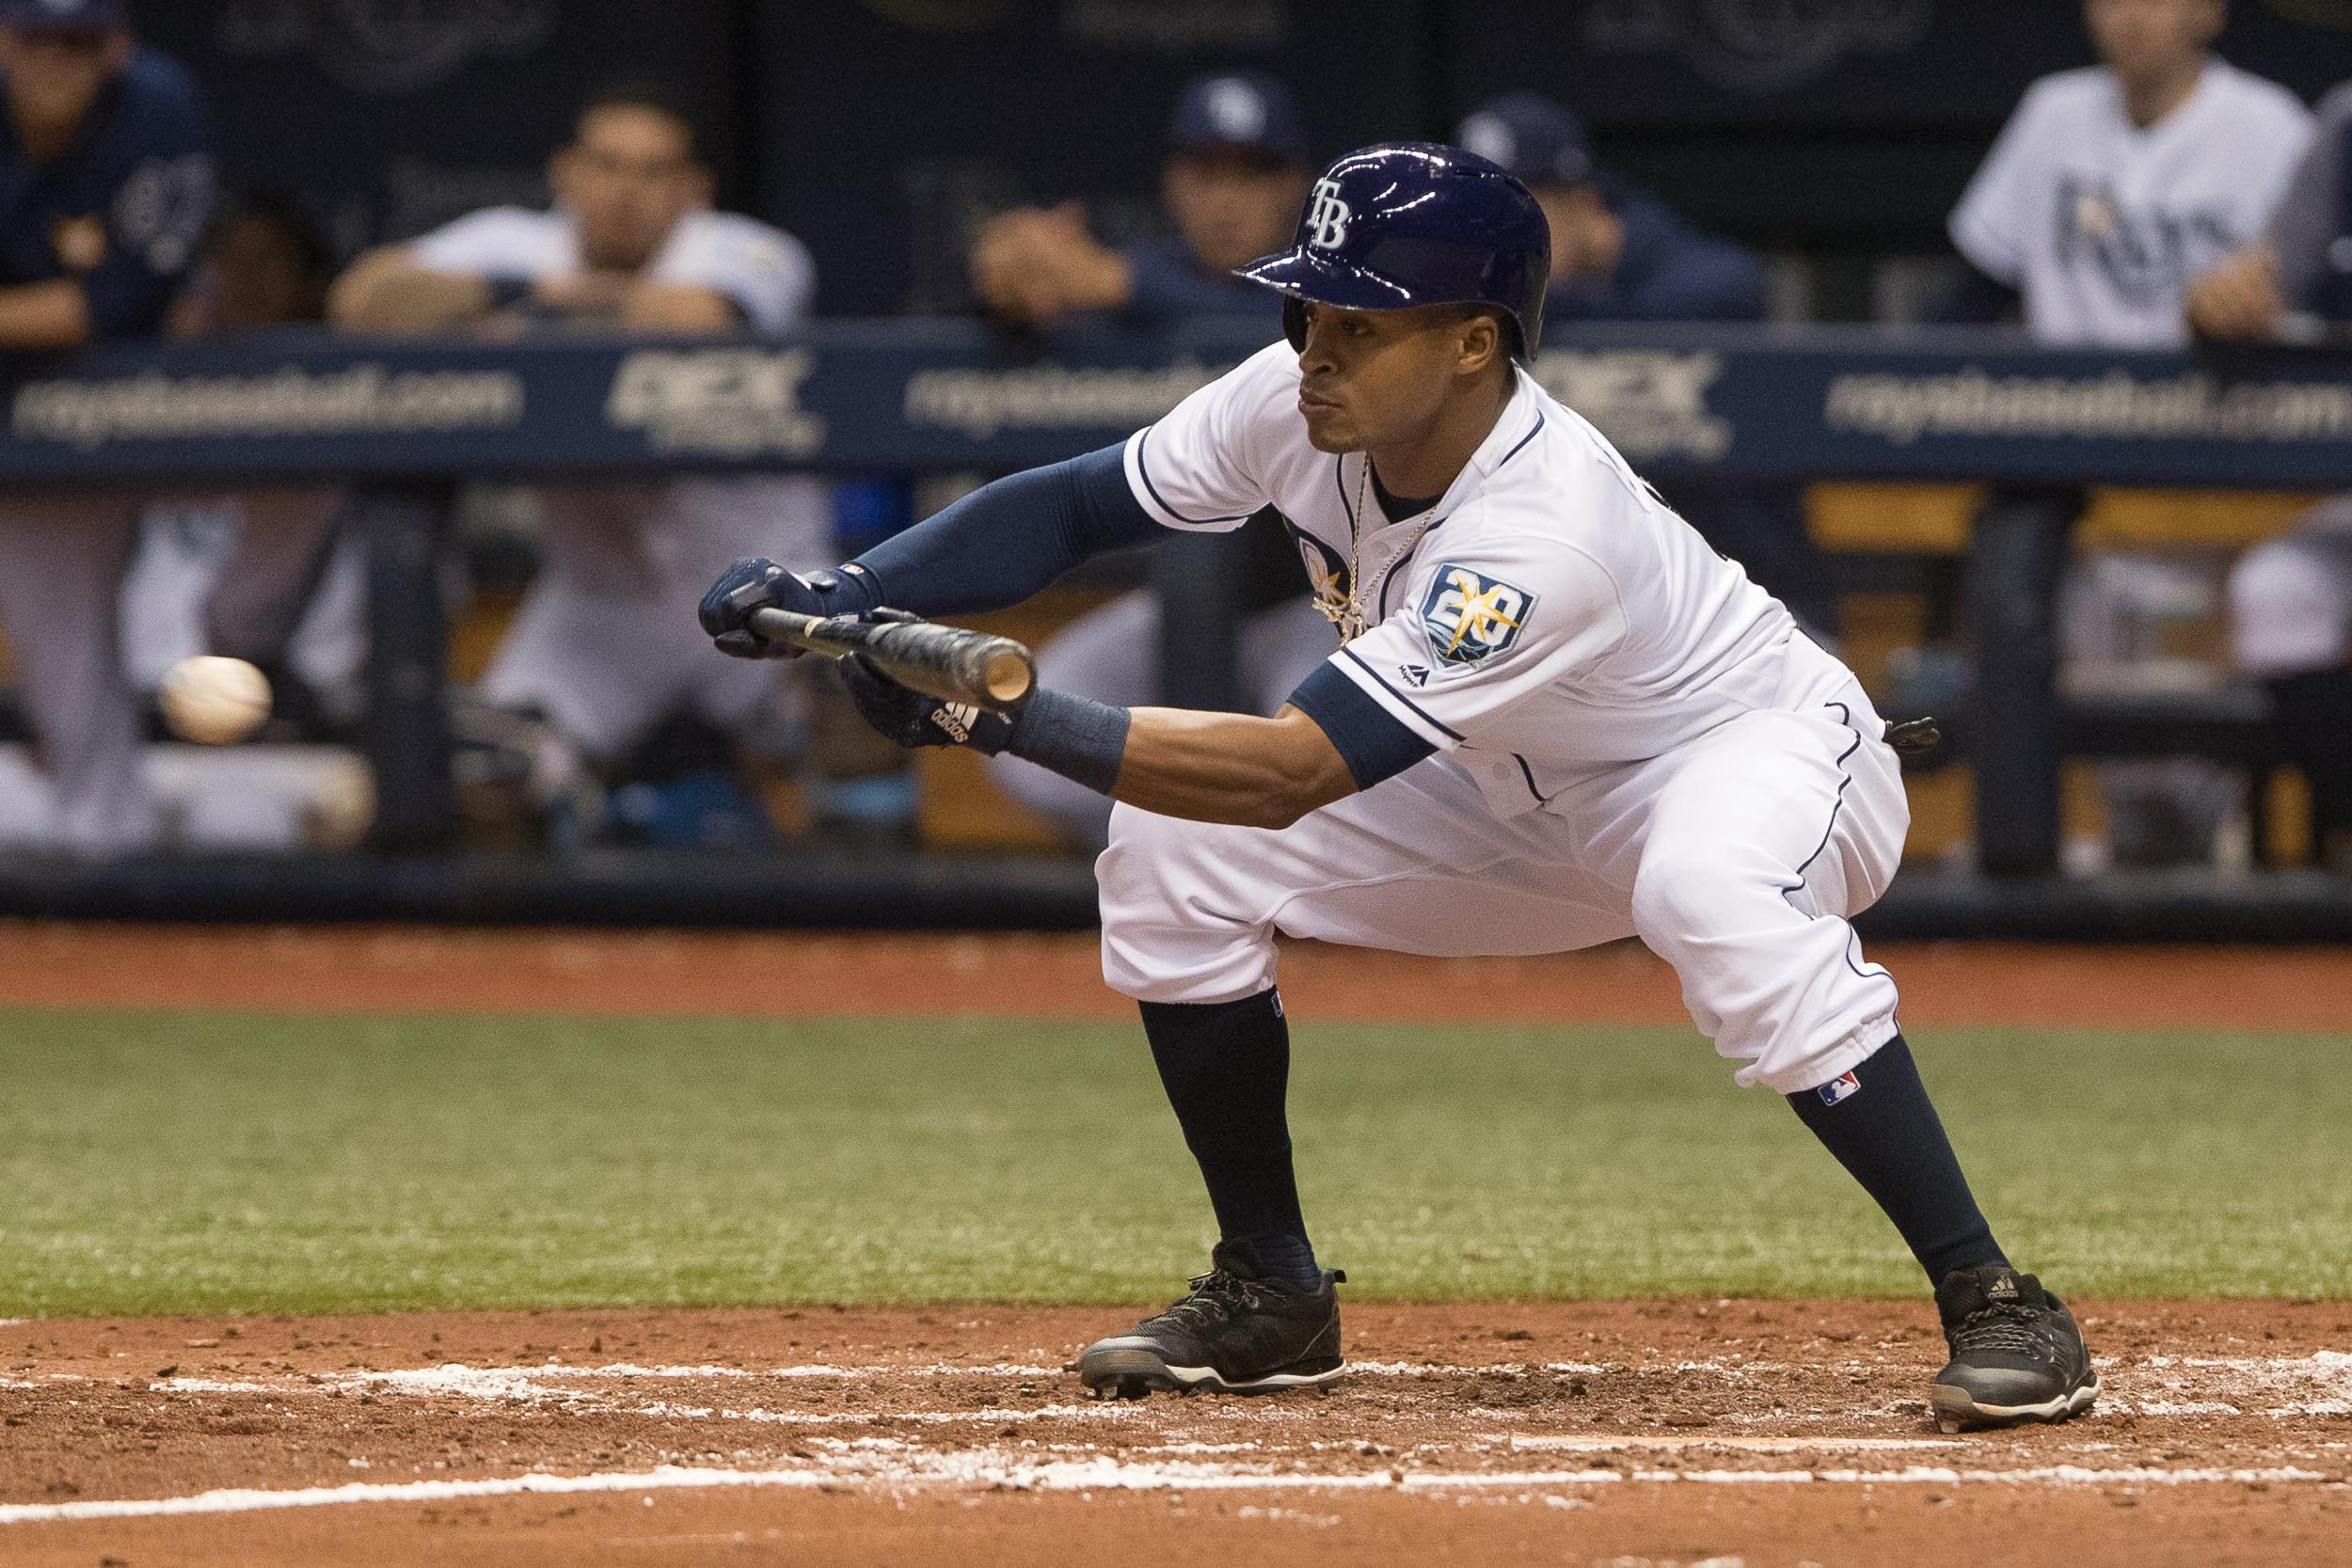 Mallex Smith lays down a bunt for the Rays./STEVEN MUNCIE